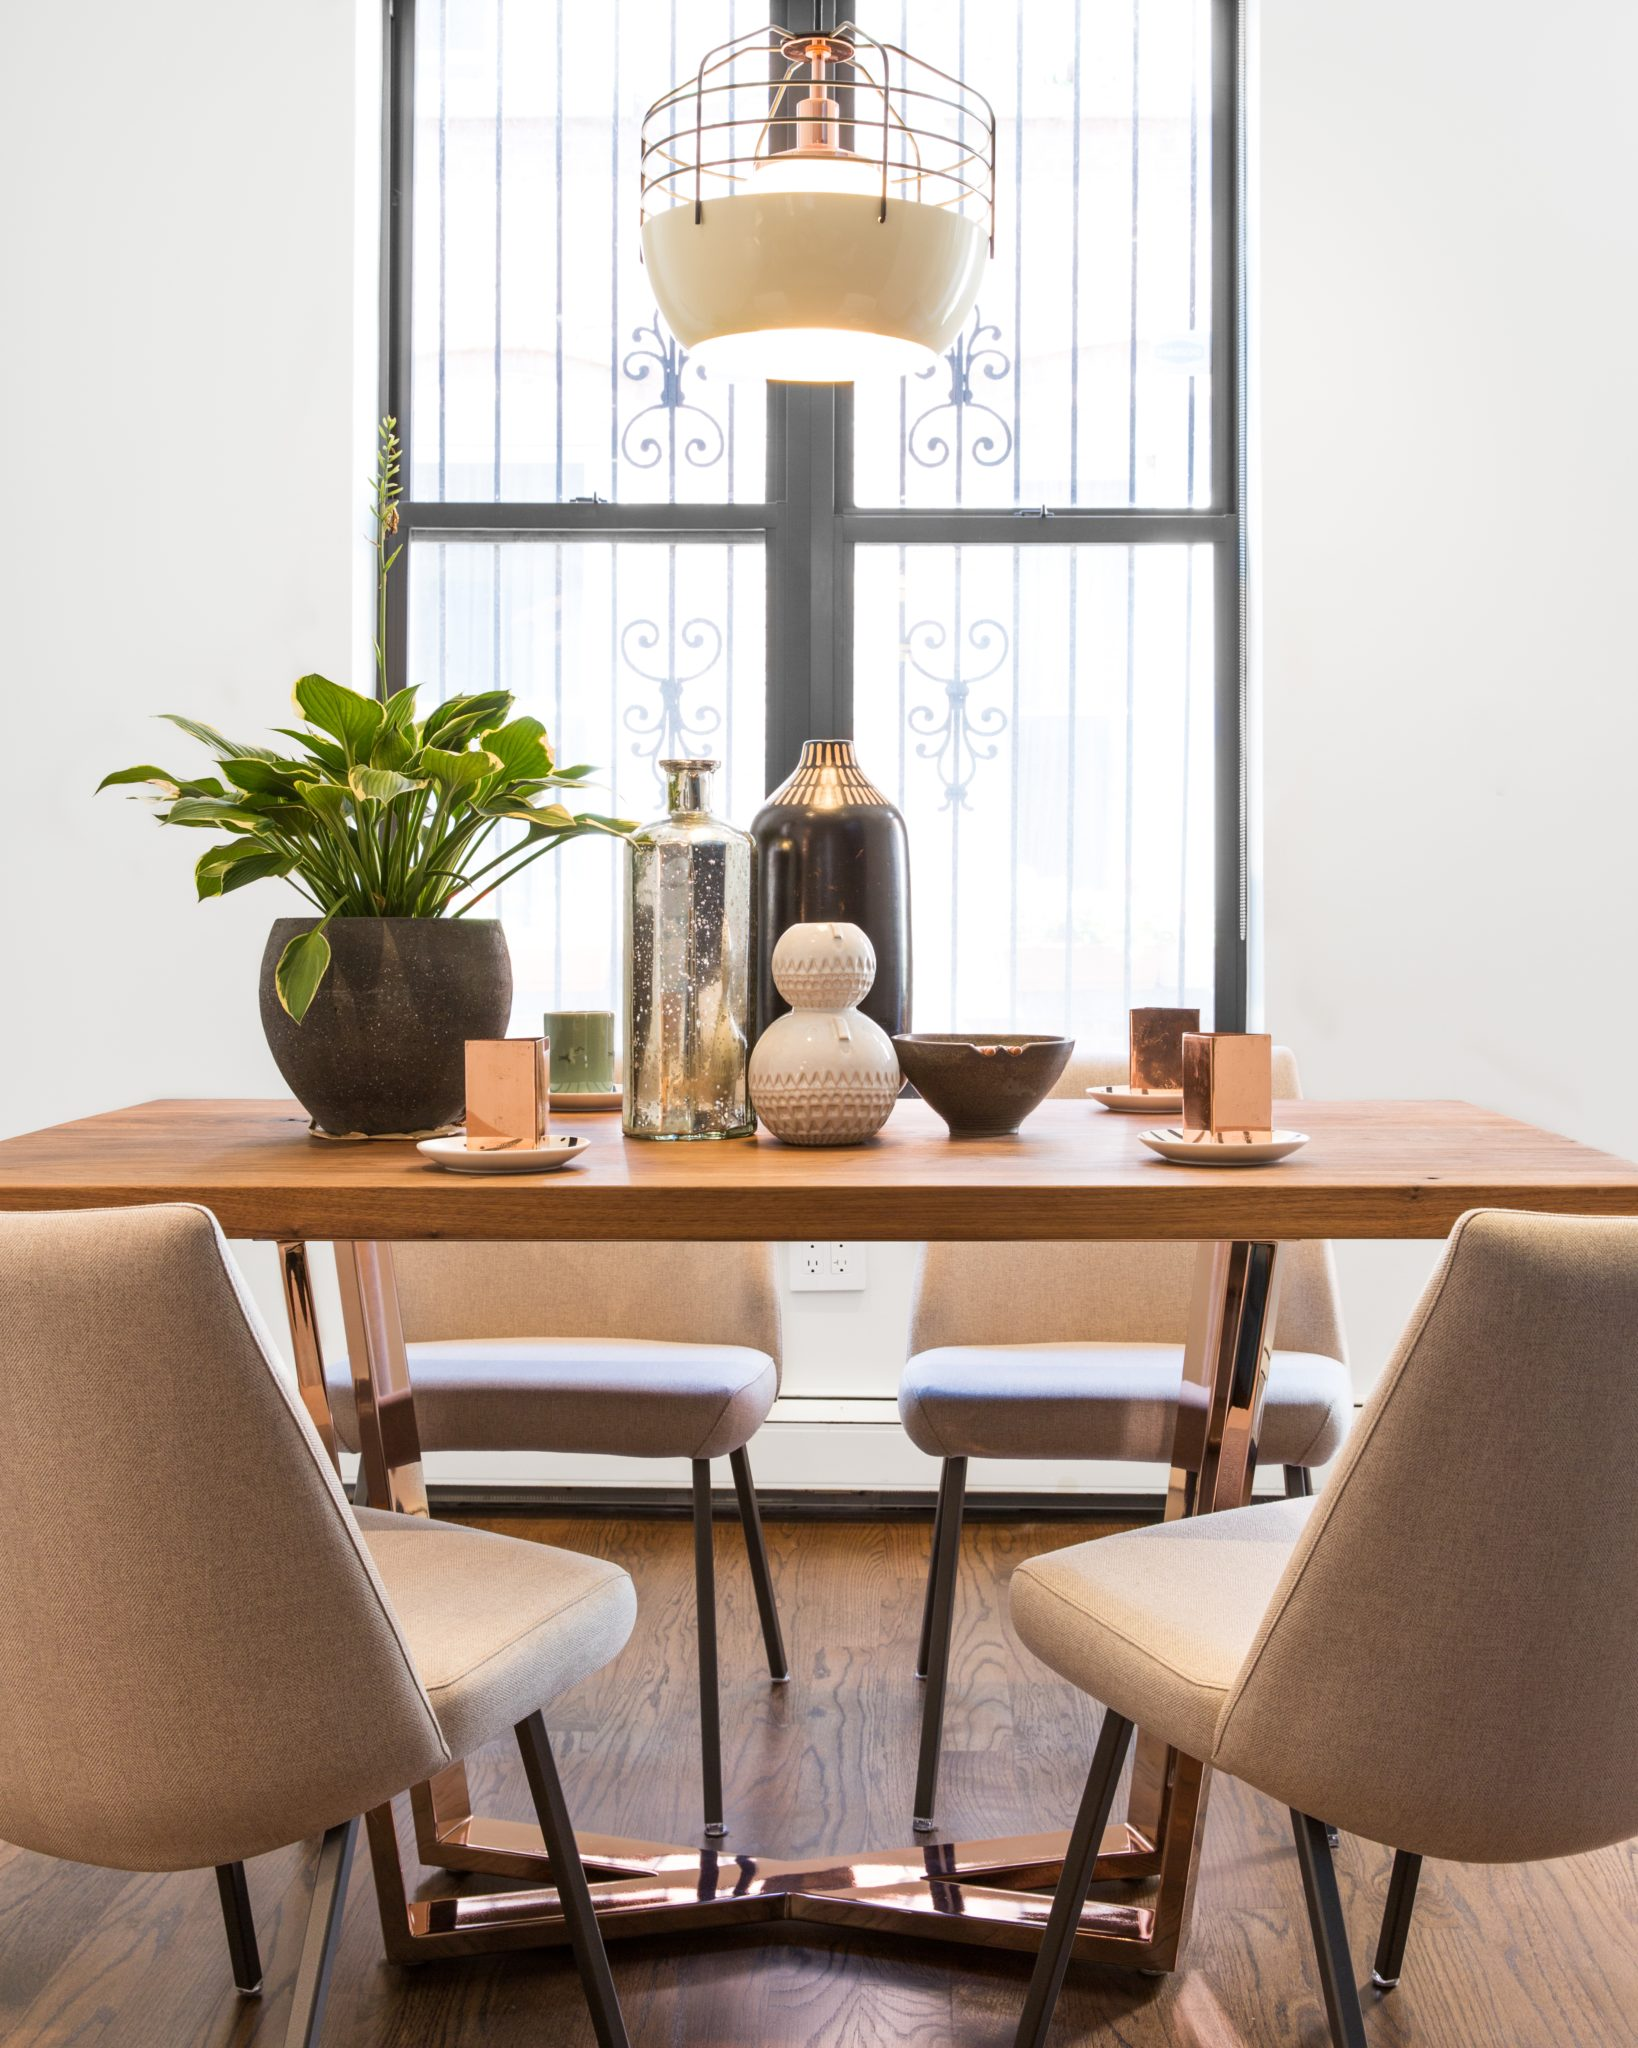 Custom dining room table and upholstered chairs by designs by human.